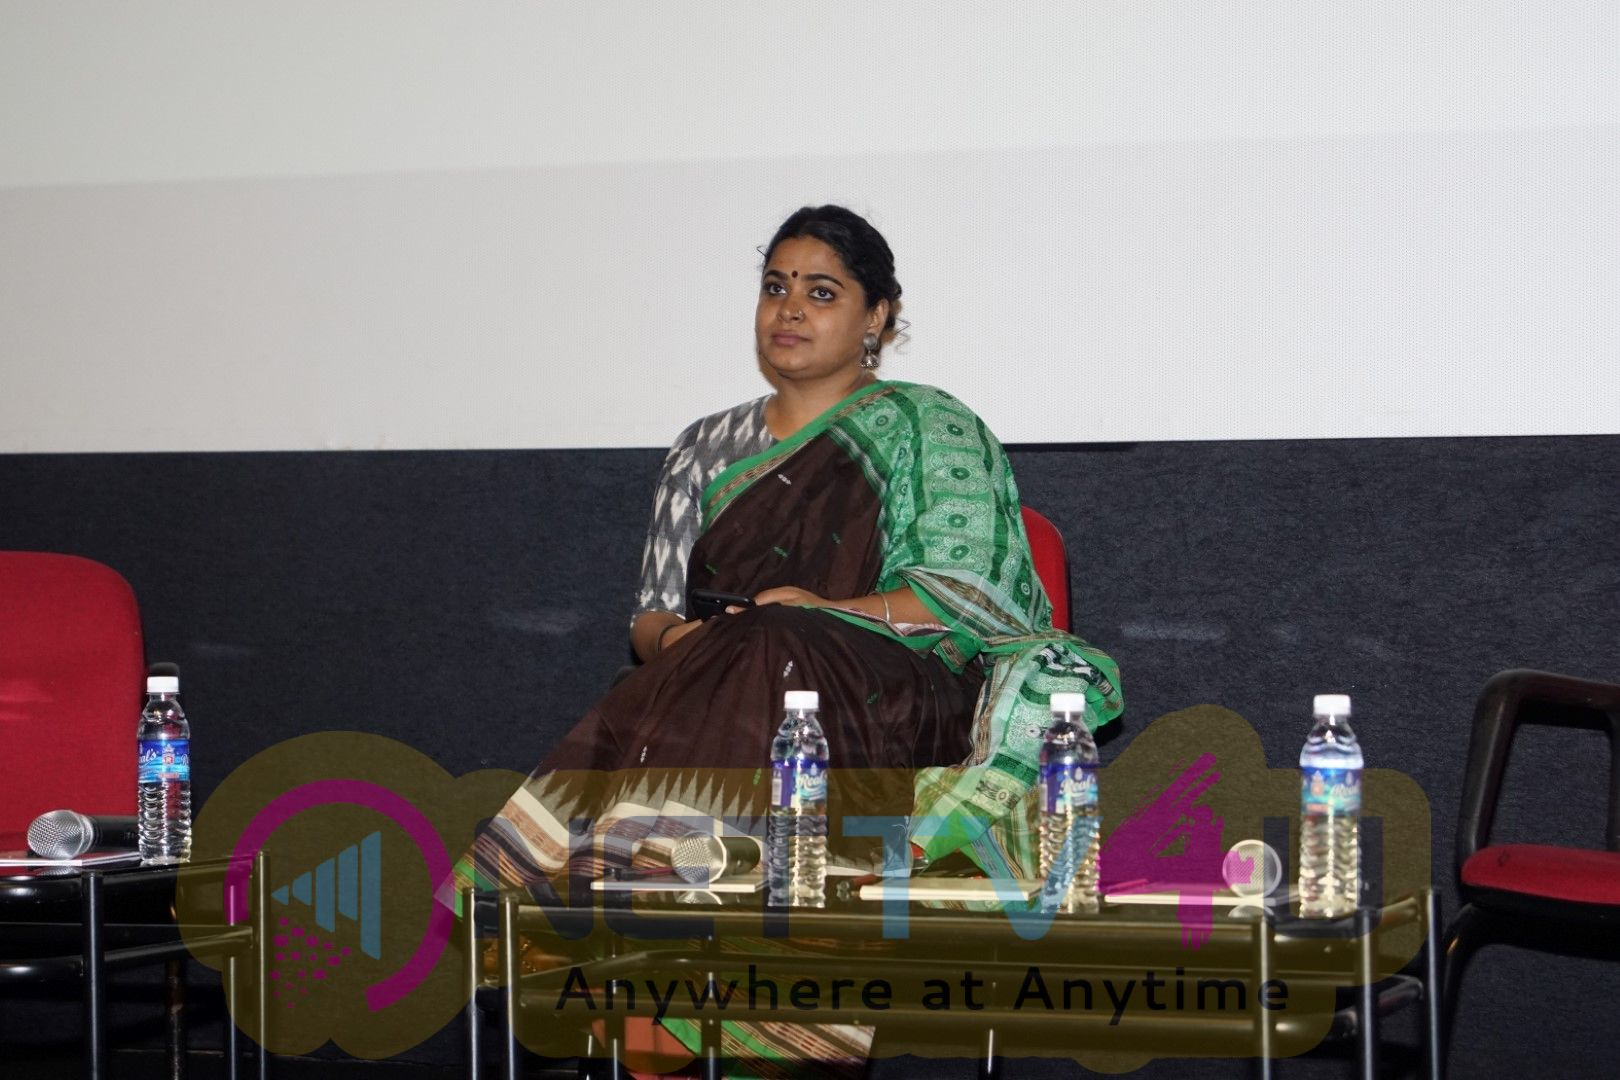 Ashwiny Iyer Tiwari At Young Filmmakers Of India Panel Discussion Pics